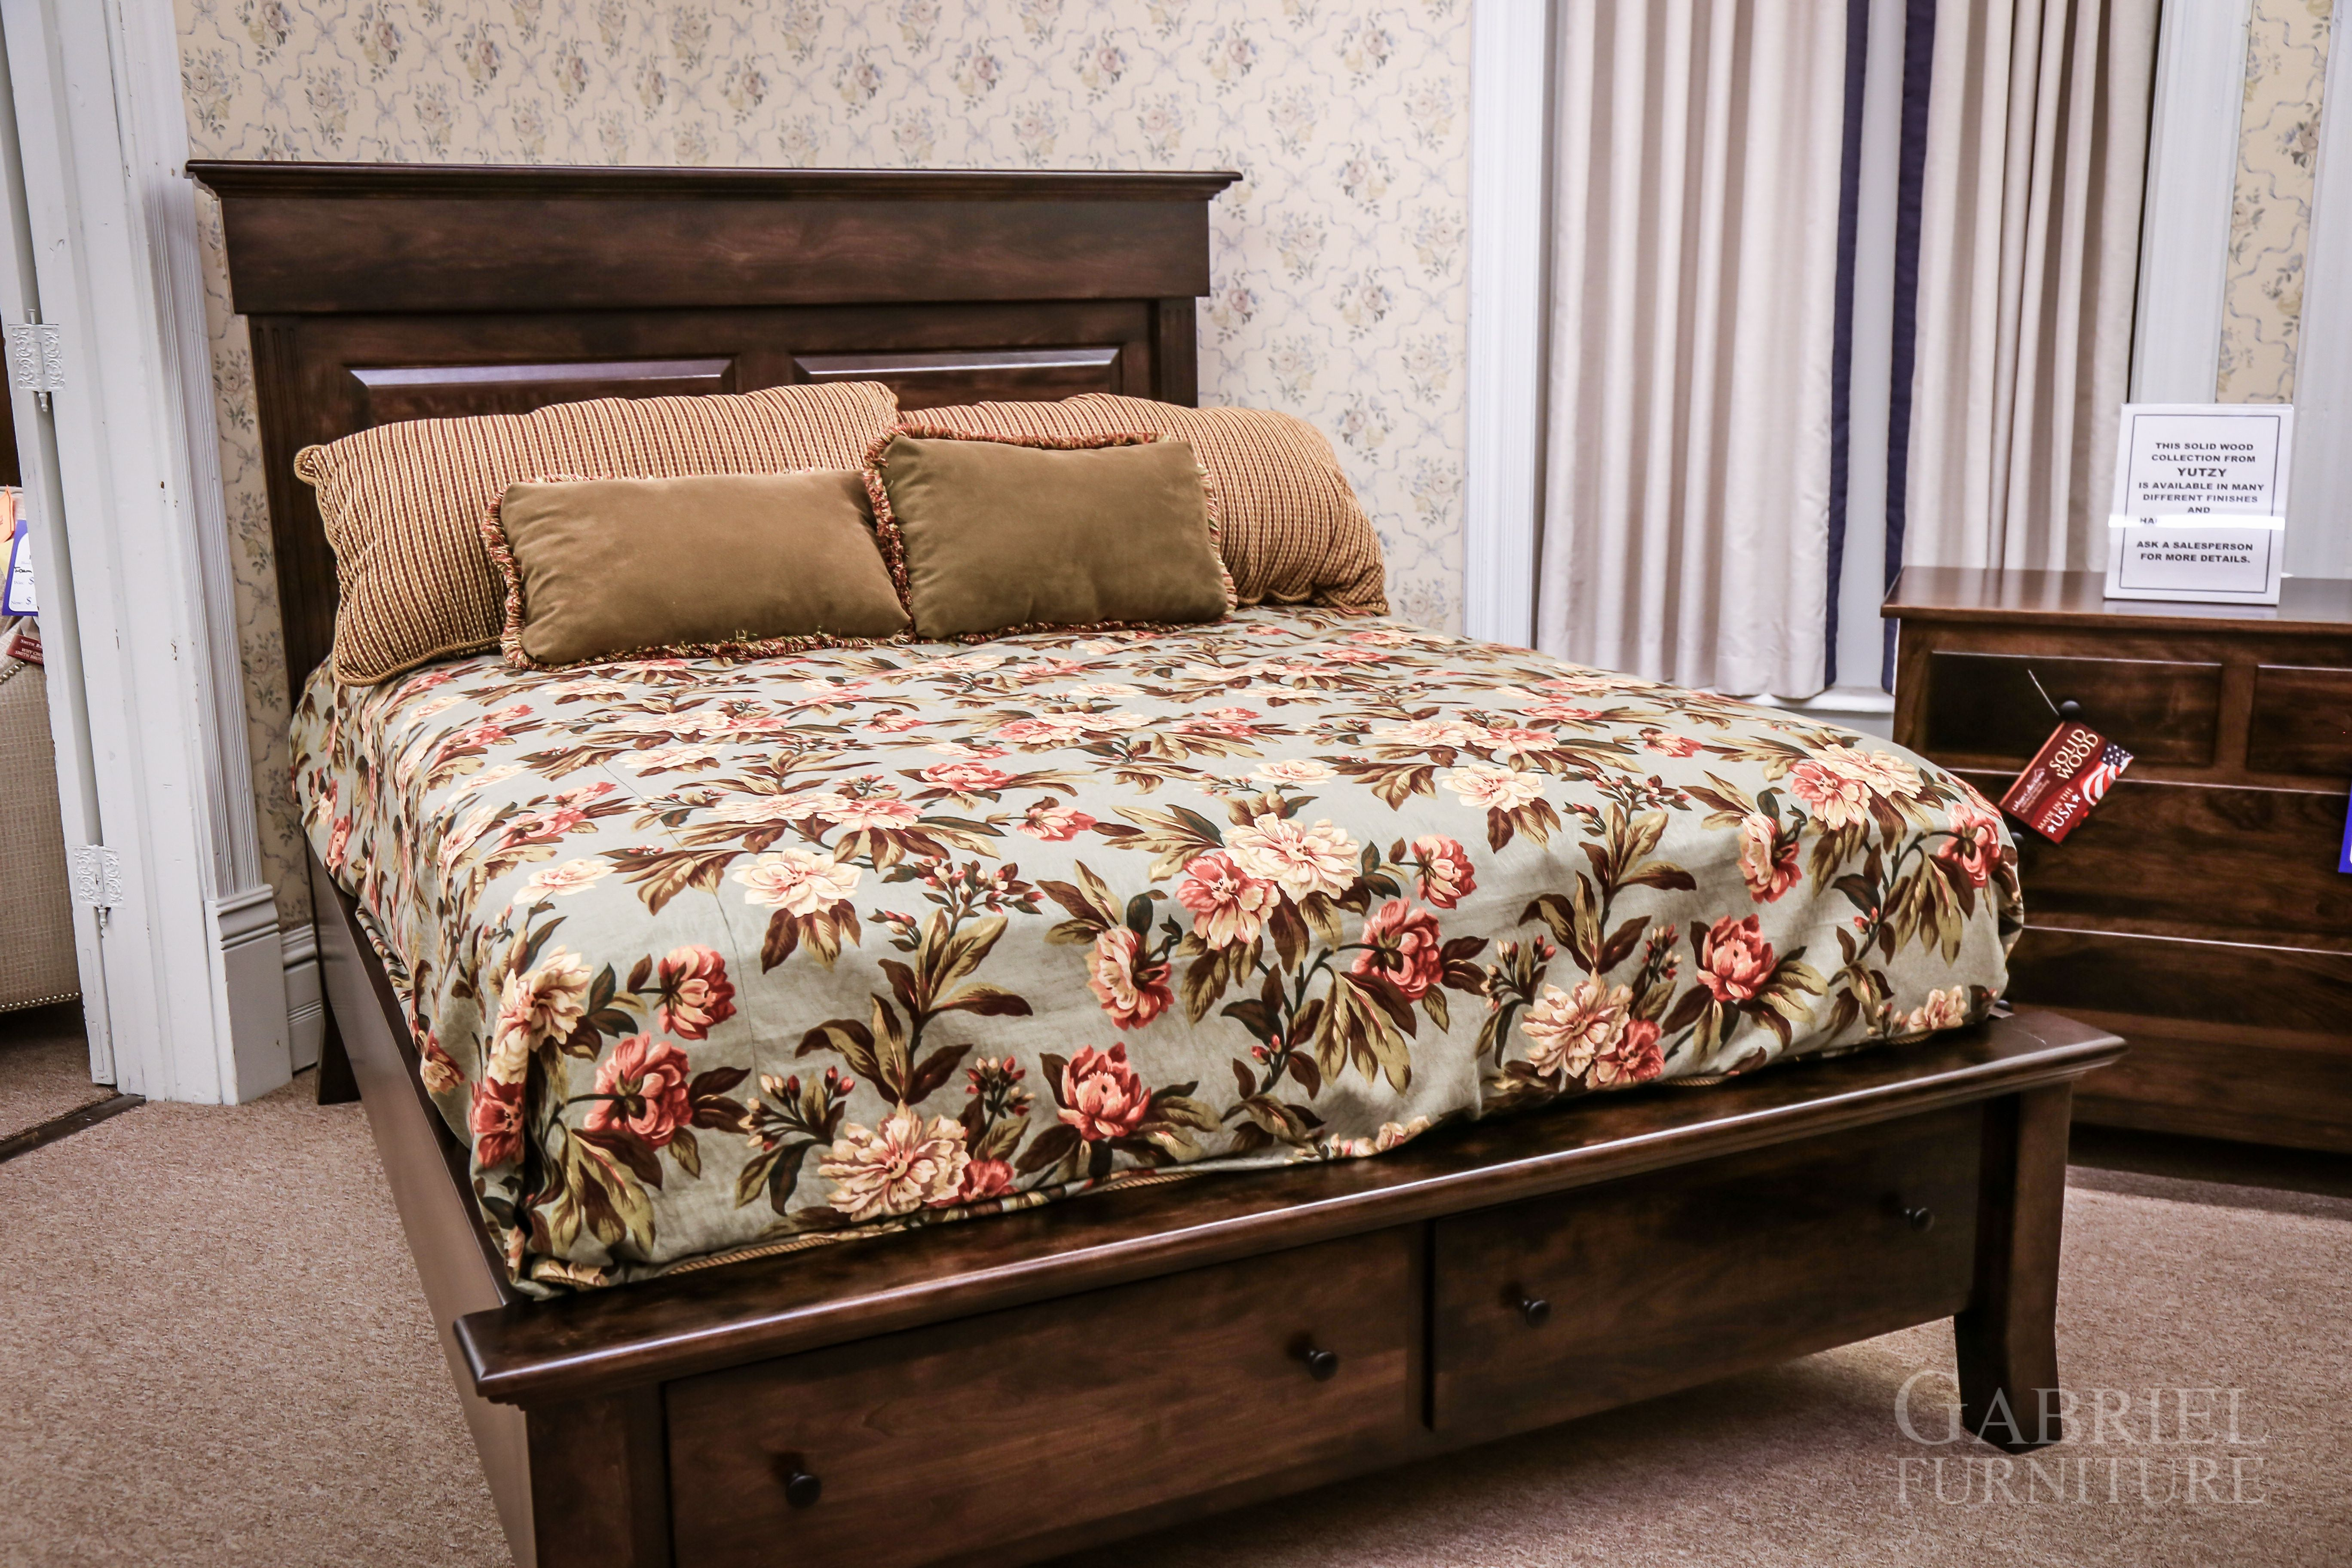 How Would You Like To Have This Beautiful New Amish Made Bedroom Set In Your Home Furniture Amishsale Sale Gabriels Furniture Furniture Store Bedroom Set